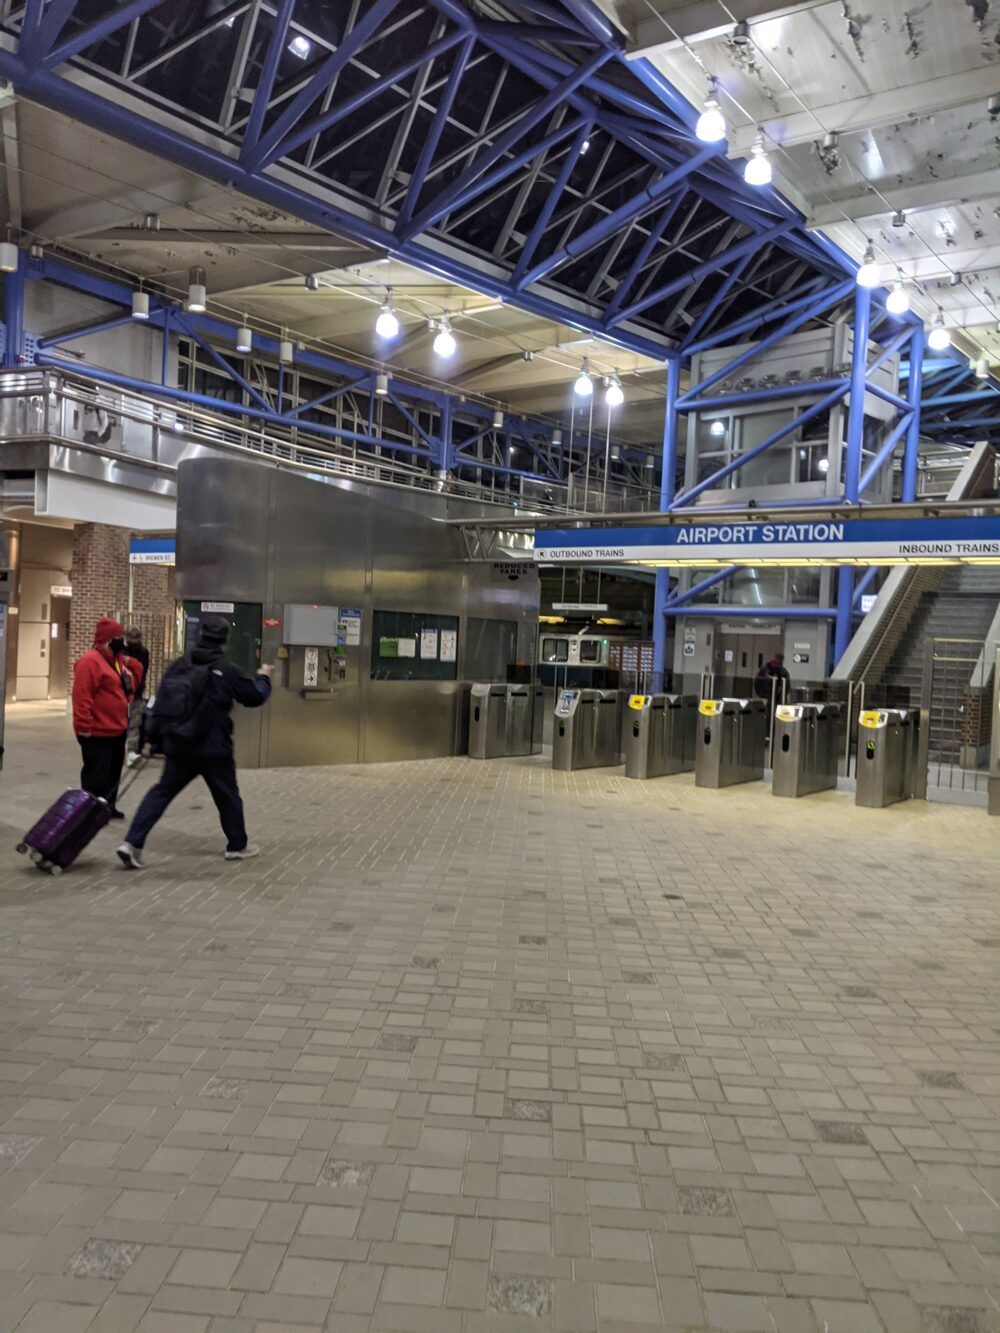 airport station entrance on the blue line